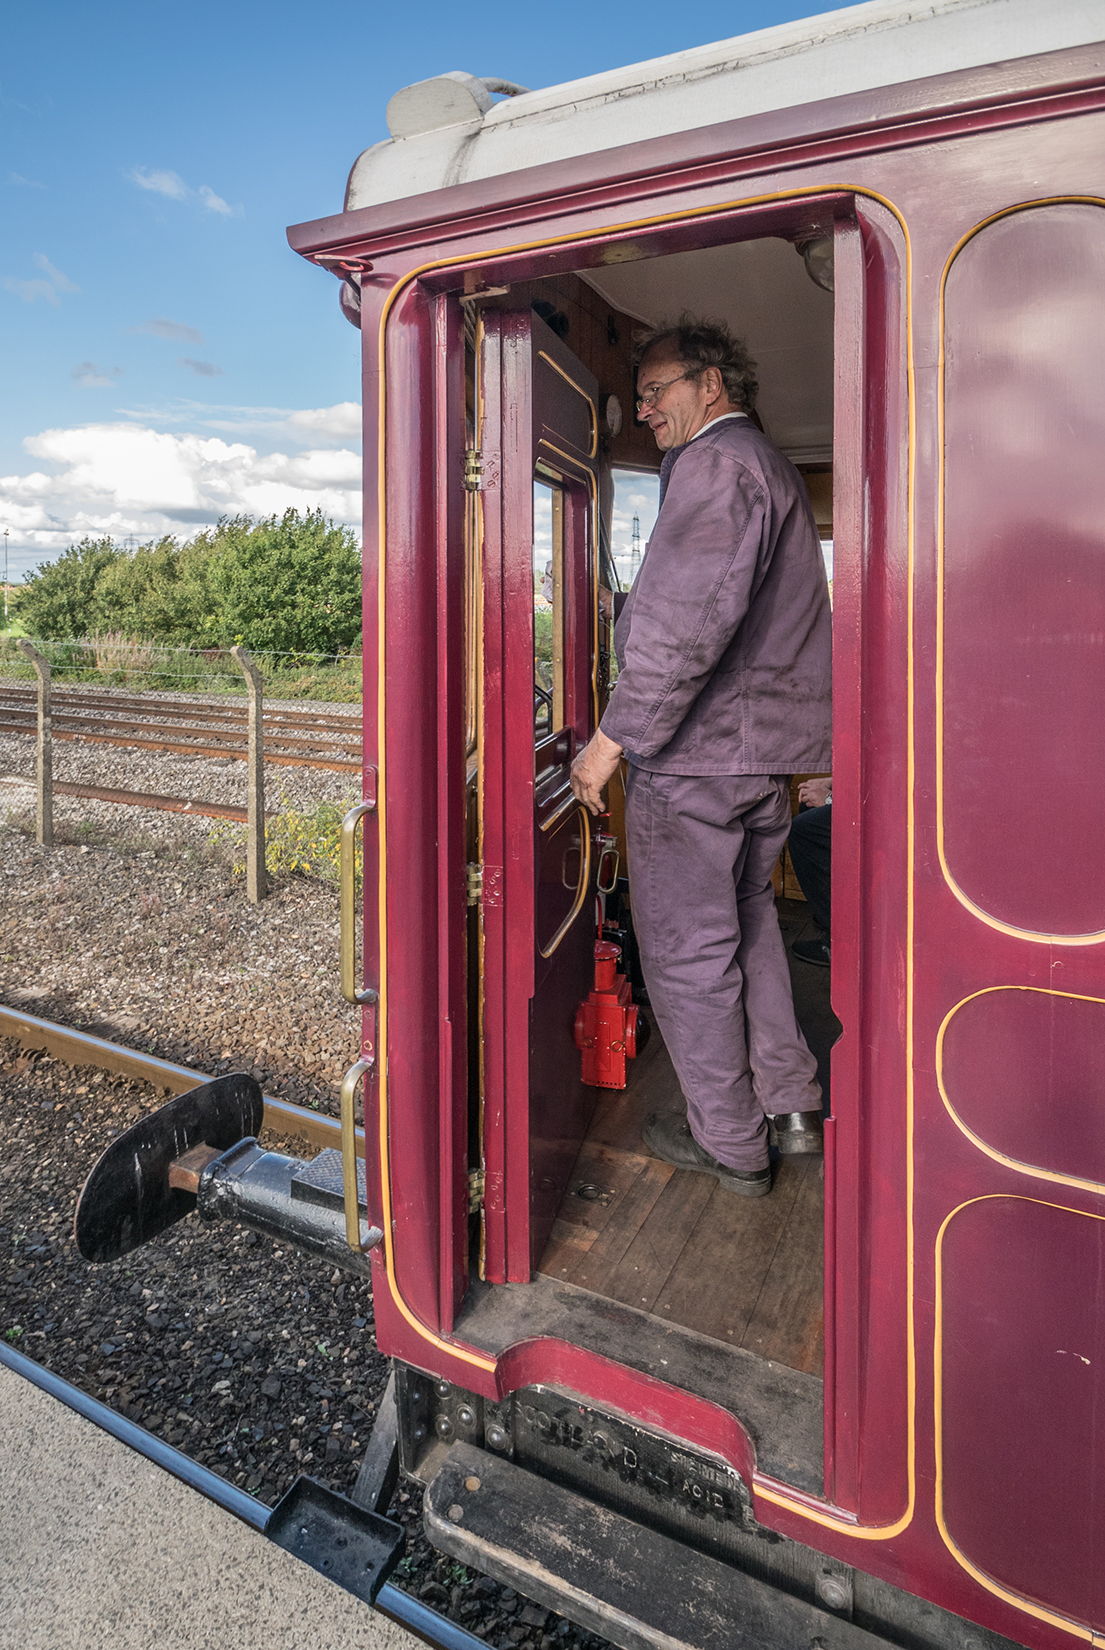 Driver preparing to remotely control Steam Railmotor No. 93